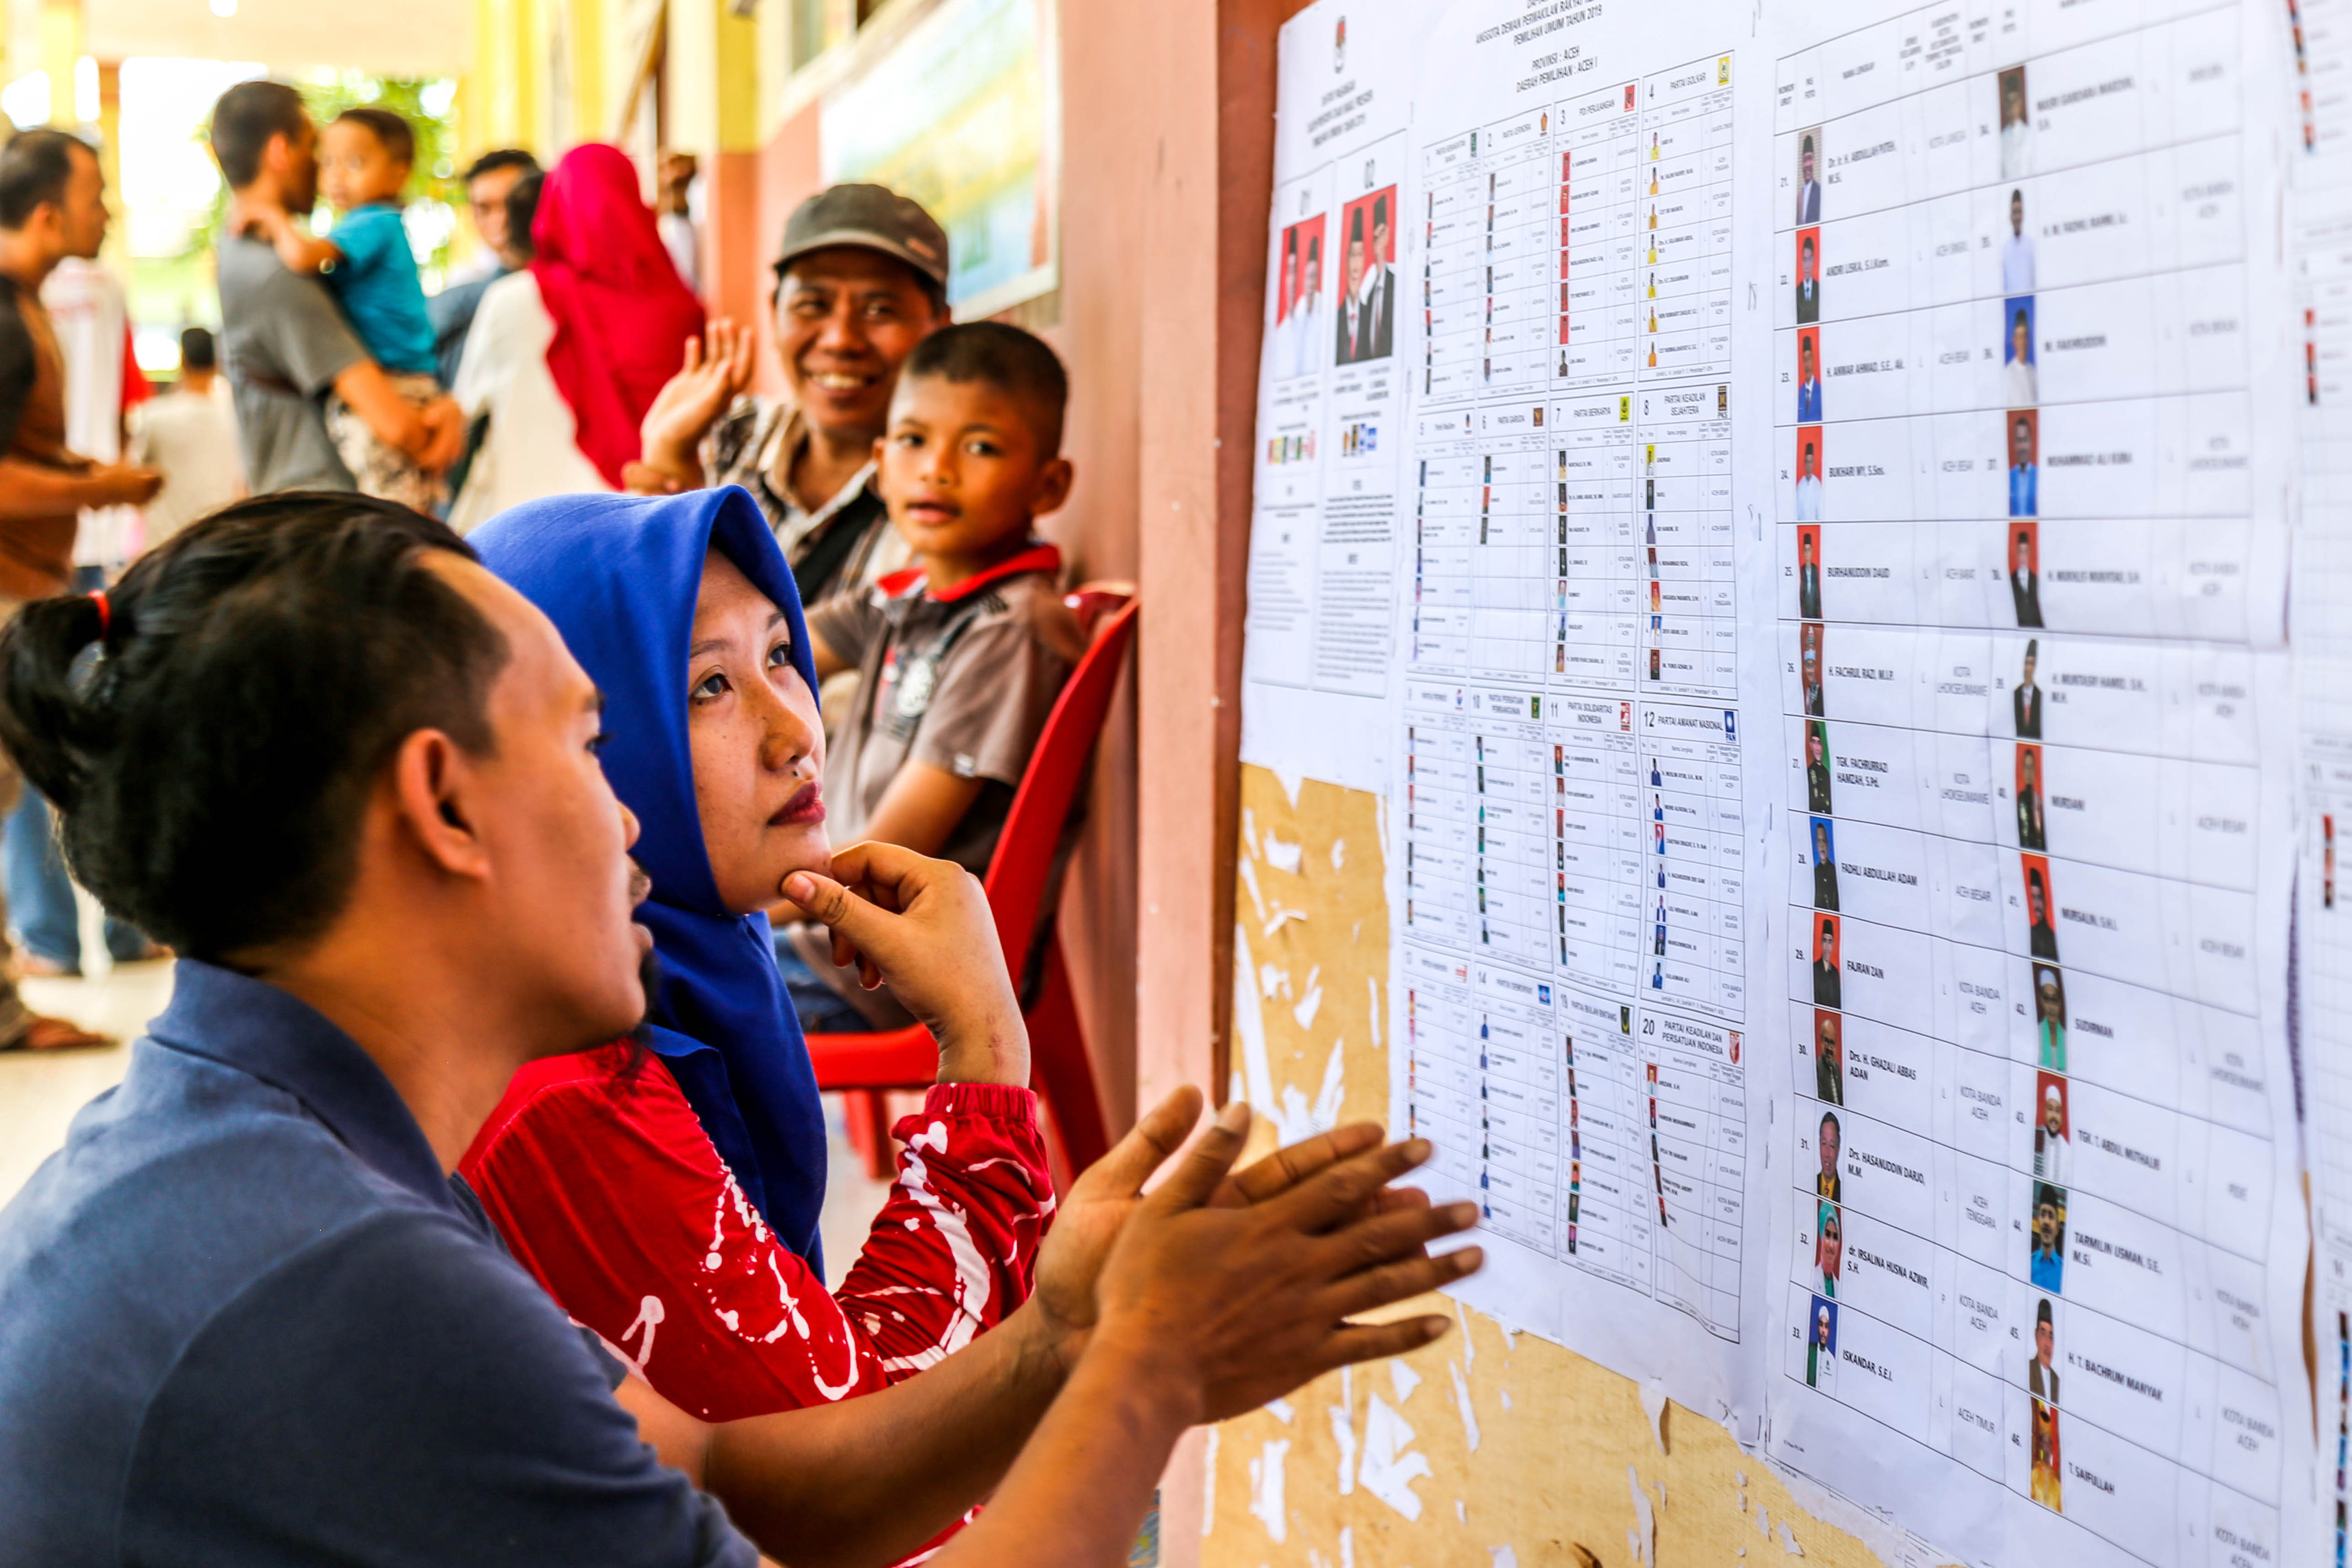 Indonesian Elections: Scenes From Aceh